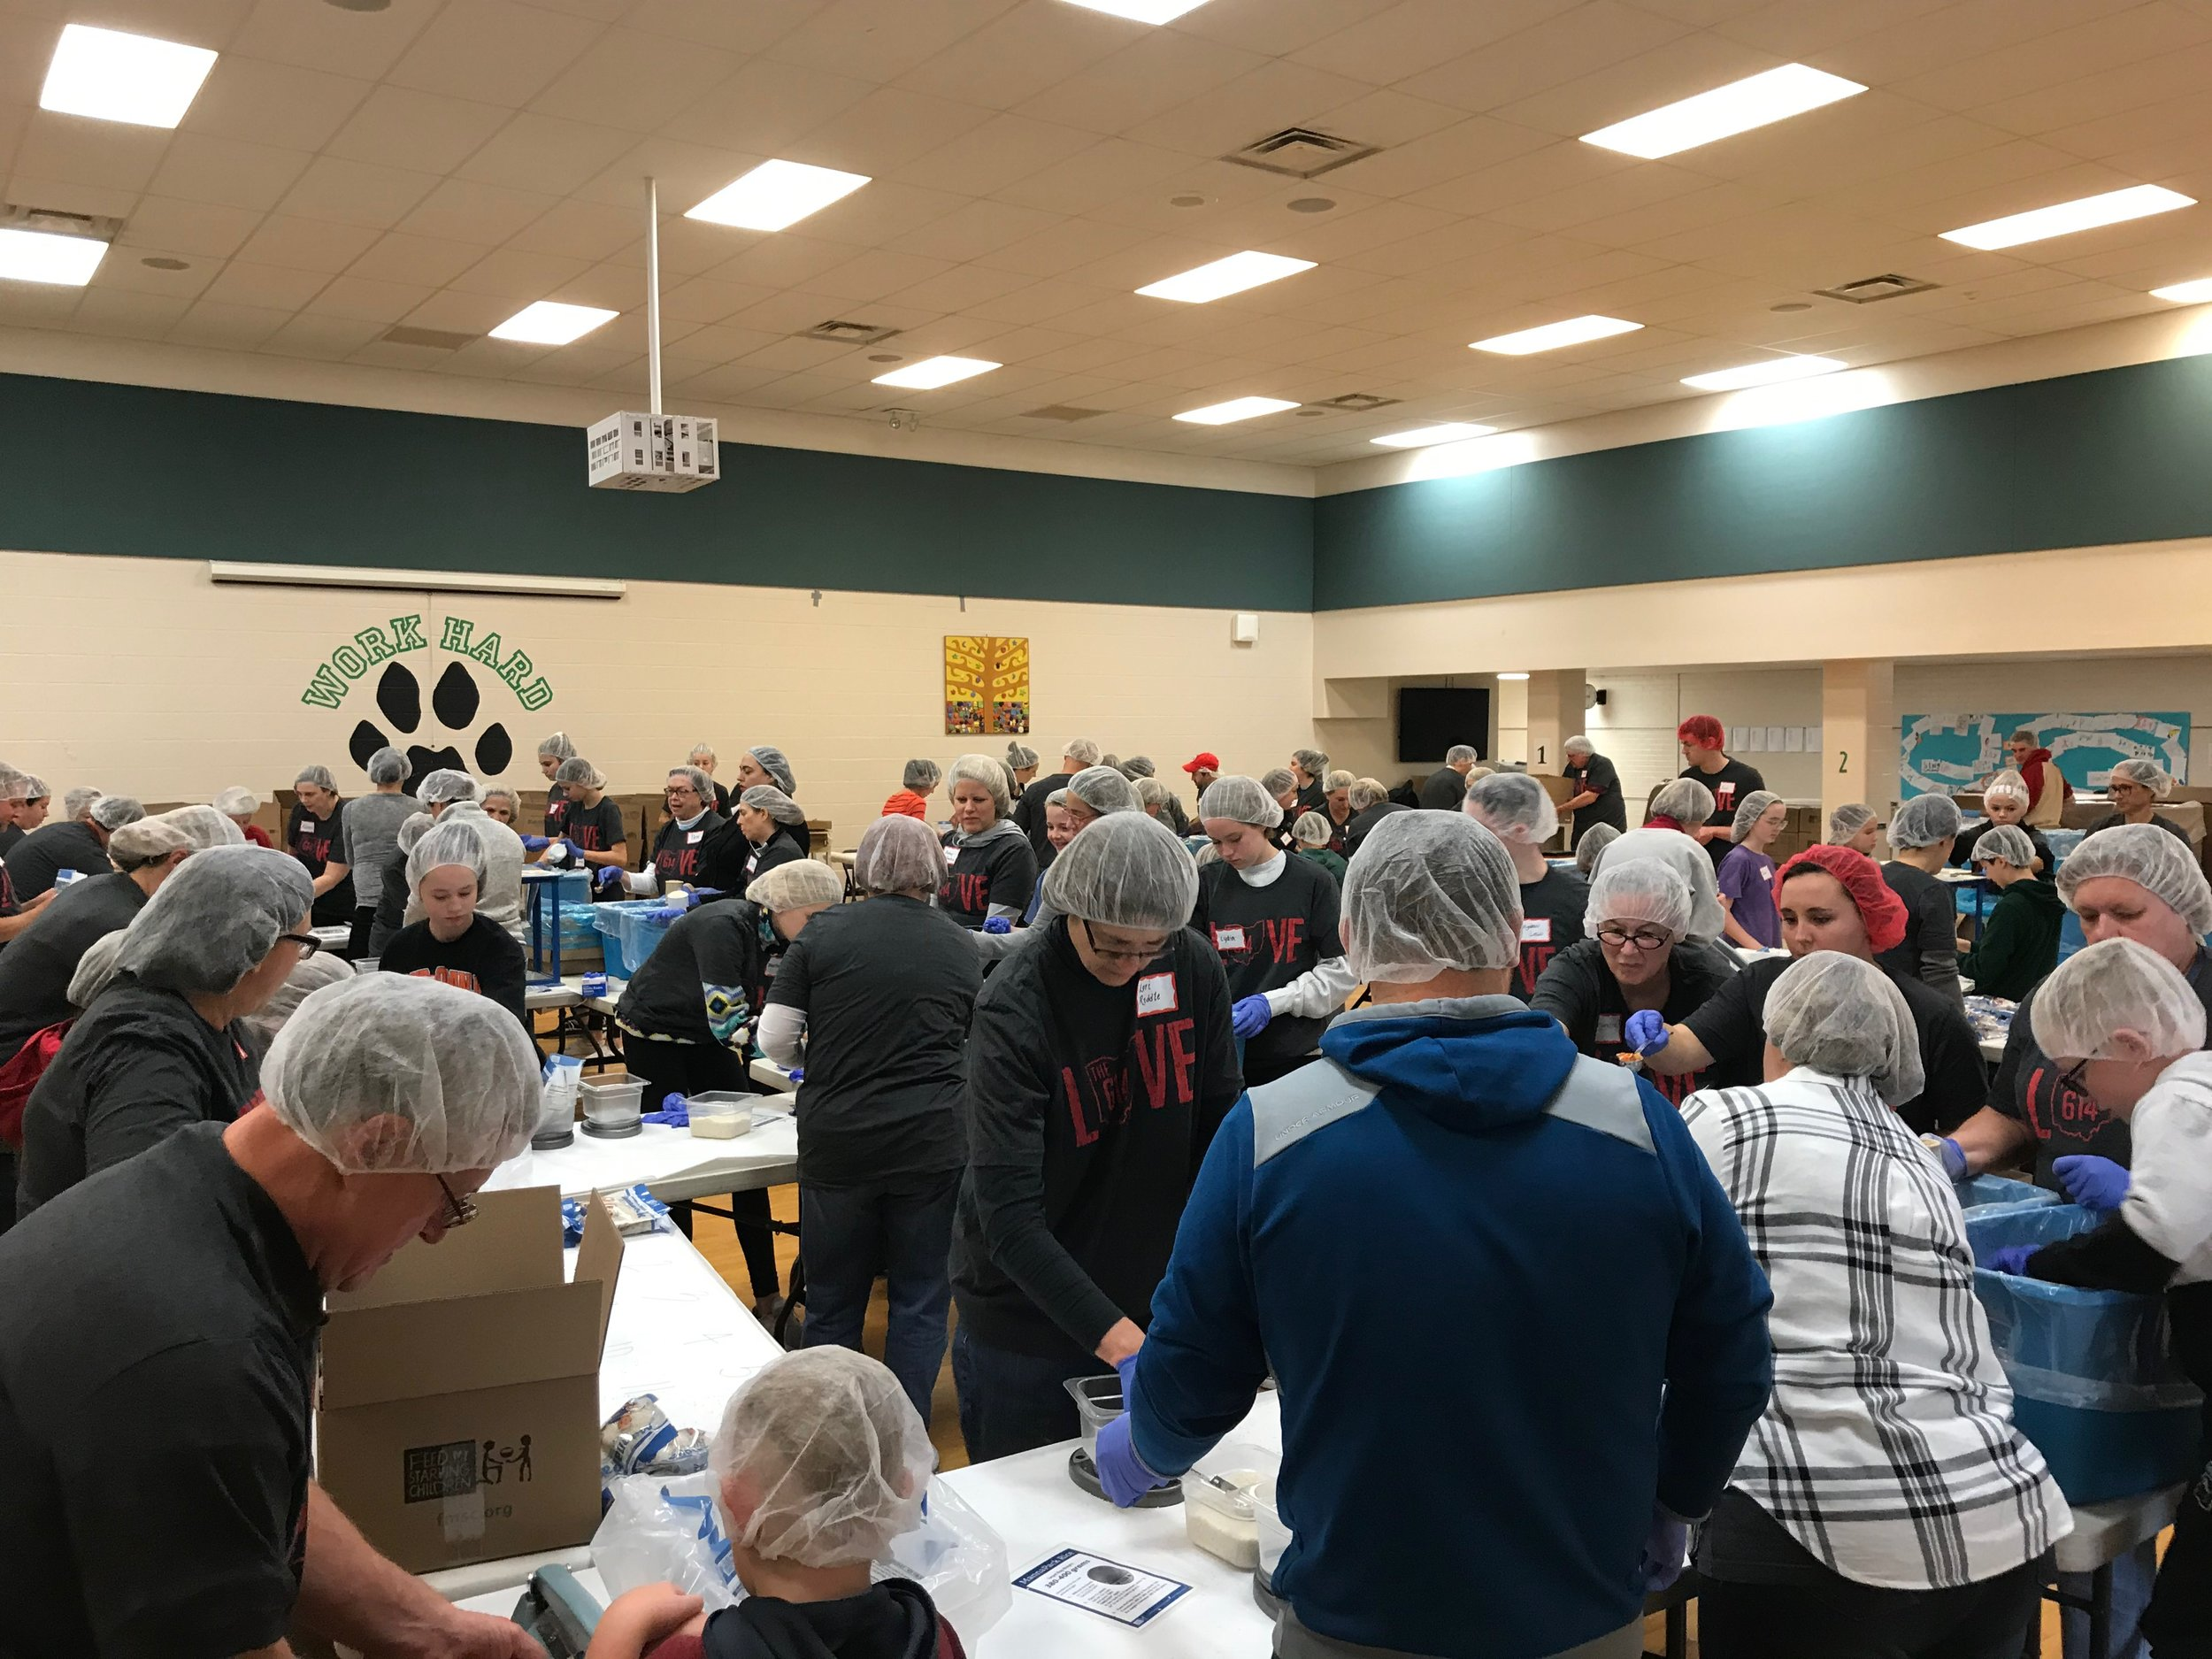 500,000 MEALS 2,500 VOLUNTEERS LOVETHE614 -